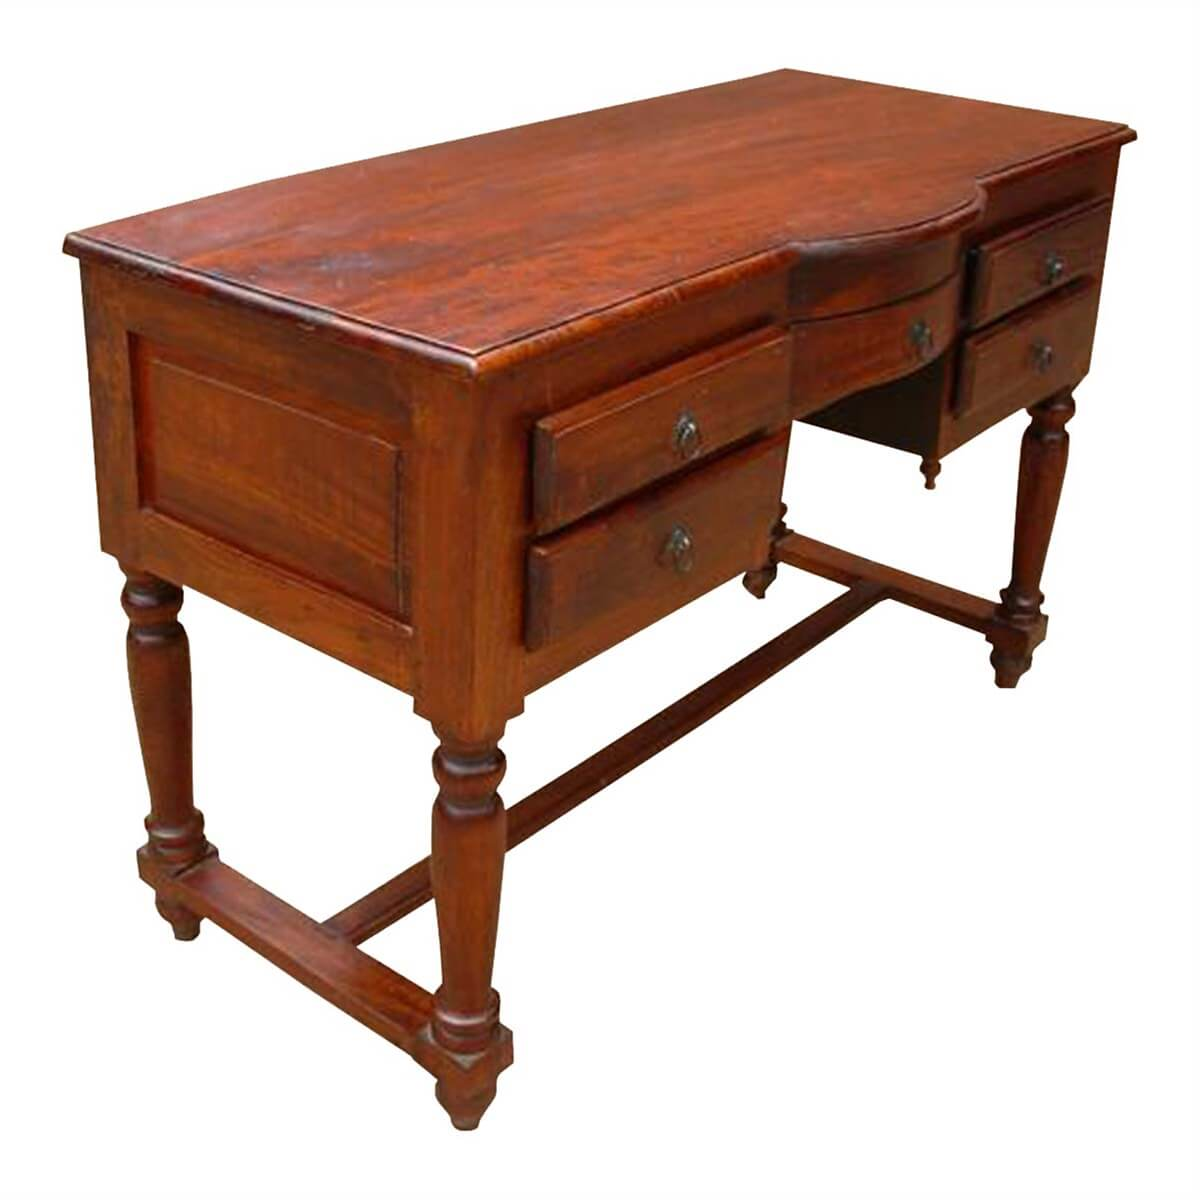 Superb img of  Room Desks Solid Wood Storage Drawers Writing Desk Console Table with #B27F19 color and 1200x1200 pixels